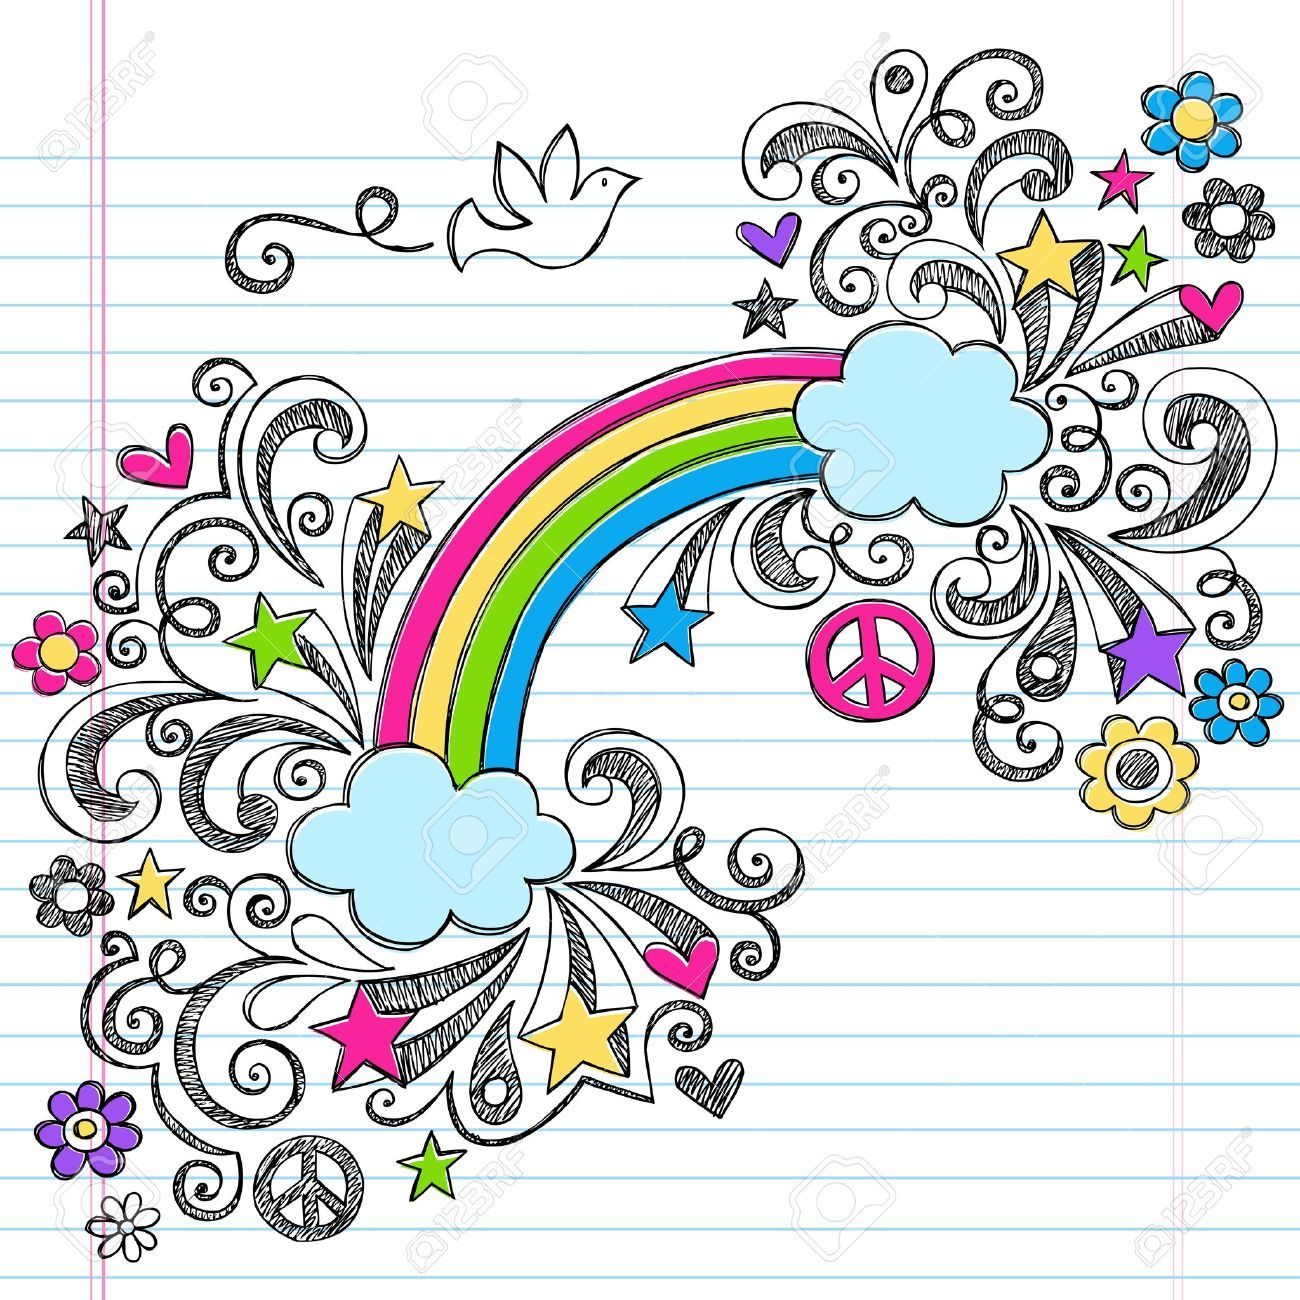 Cute easy drawings cute easy designs to draw on cute for Simple doodle designs with names